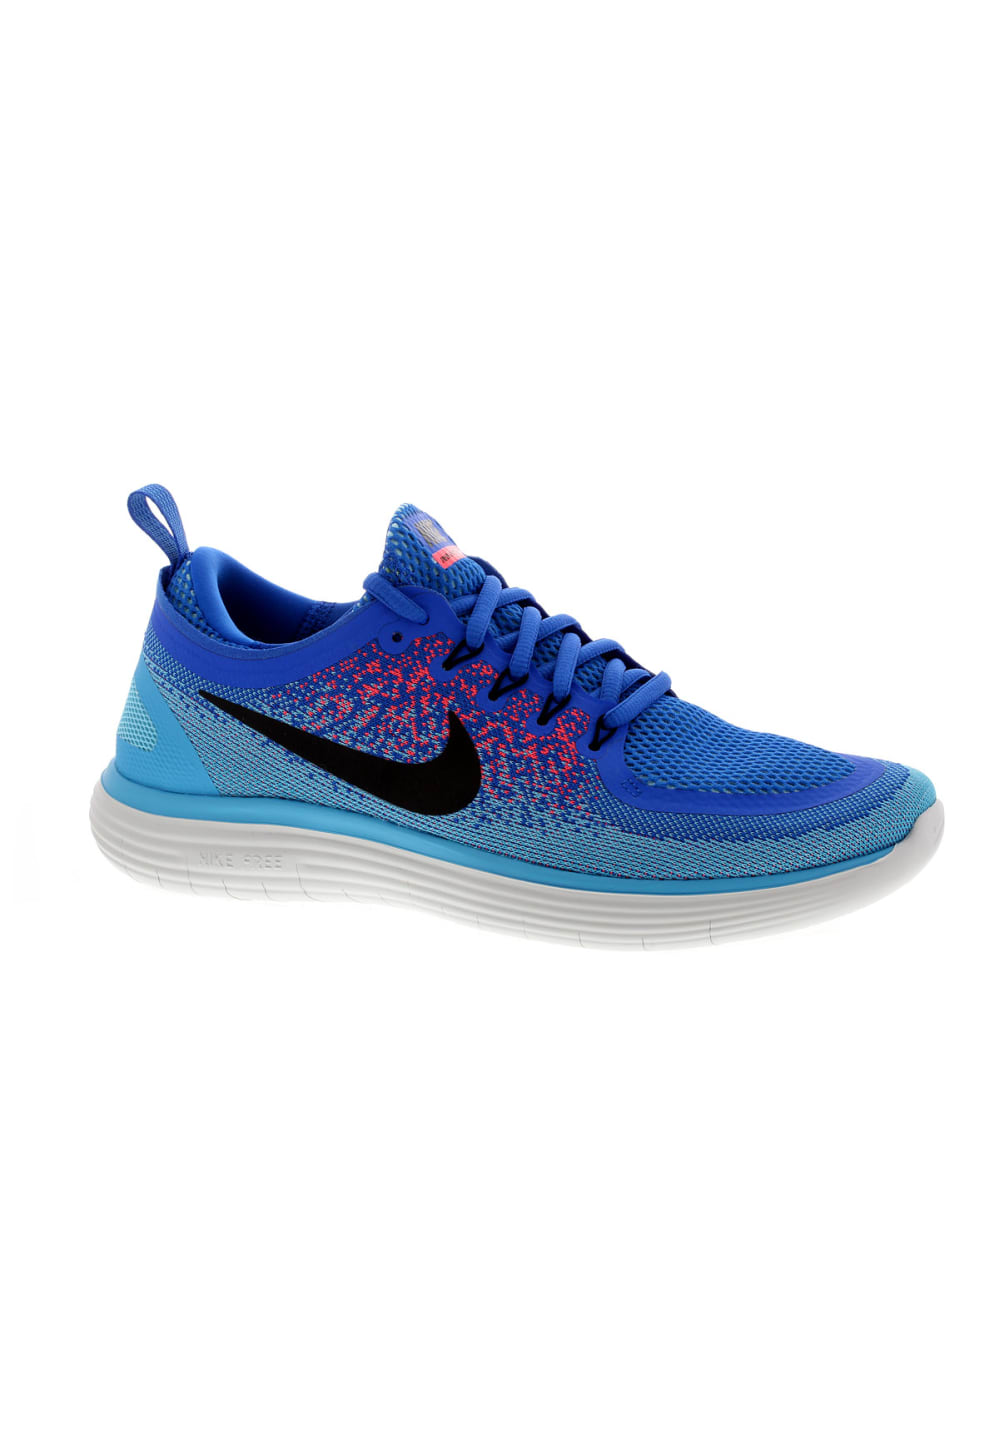 780598a60b05 Nike Free RN Distance 2 - Running shoes for Men - Blue